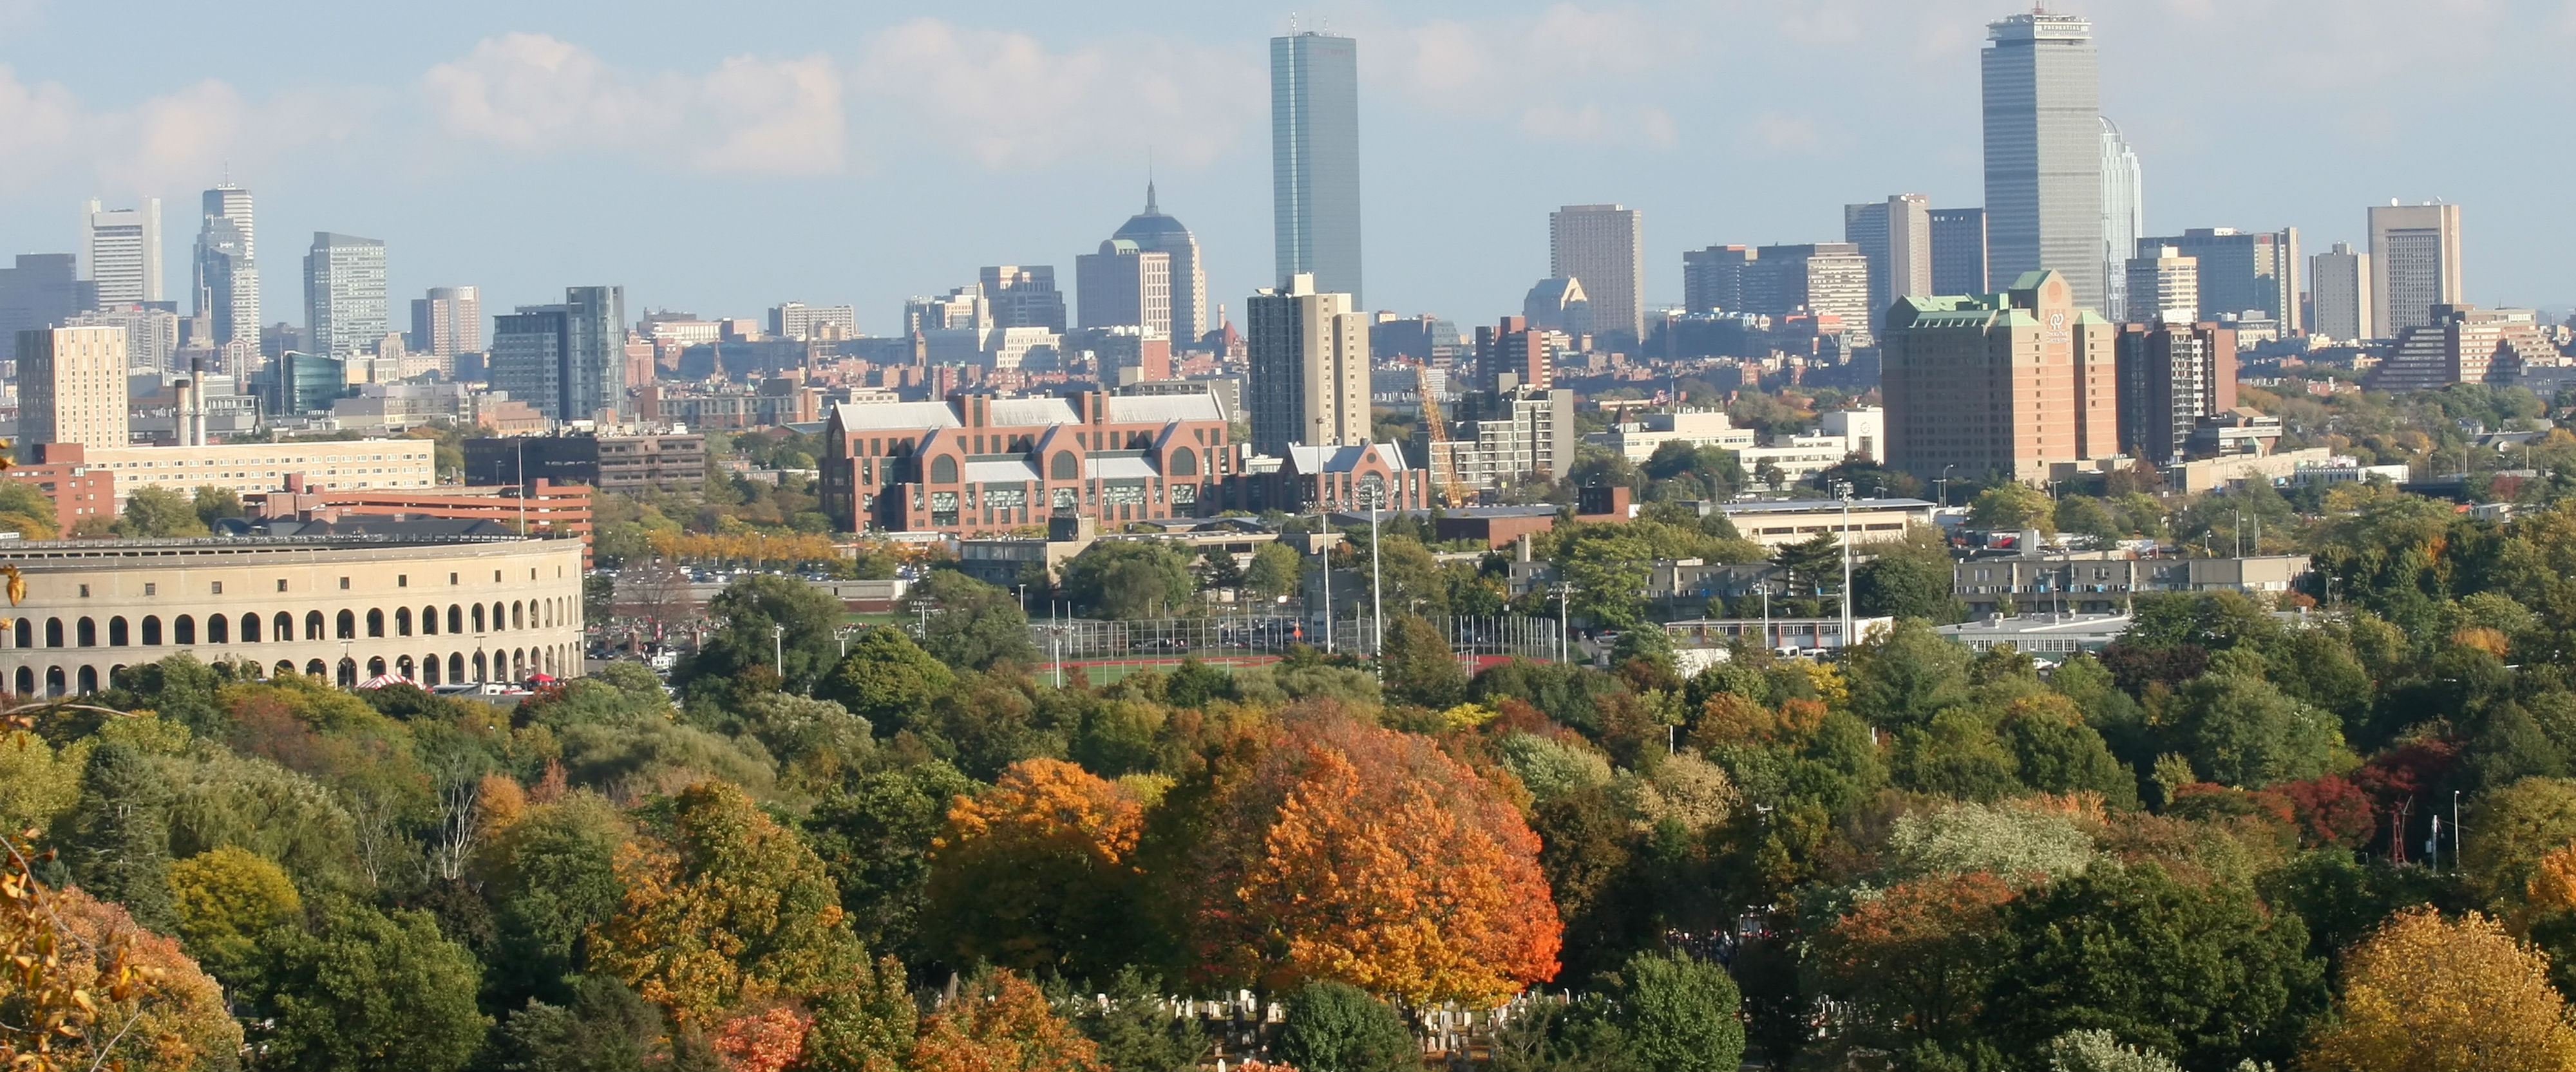 115 135 Chicago To Boston Nonstop During Fall Foliage